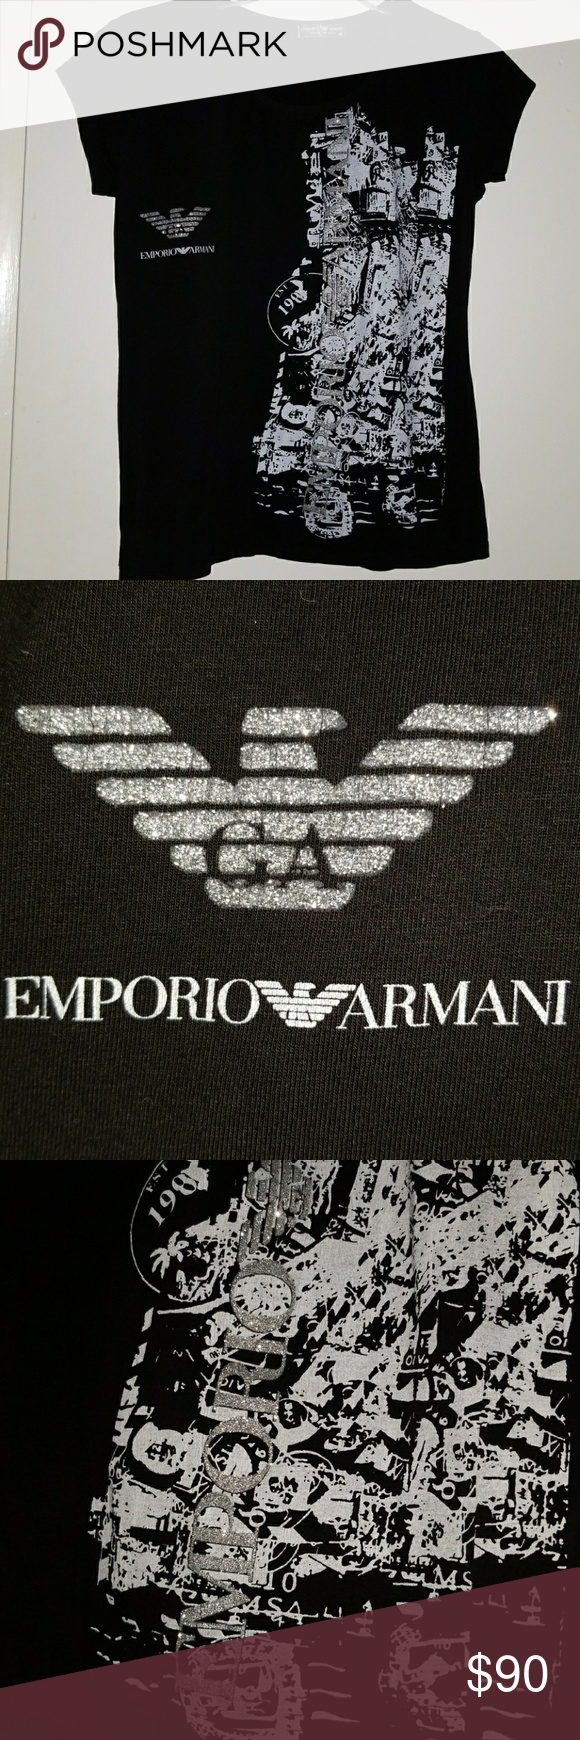 Emporio Armani Black Tee Form fitting, stretchy material, perfect condition Emporio Armani Tops Tees - Short Sleeve